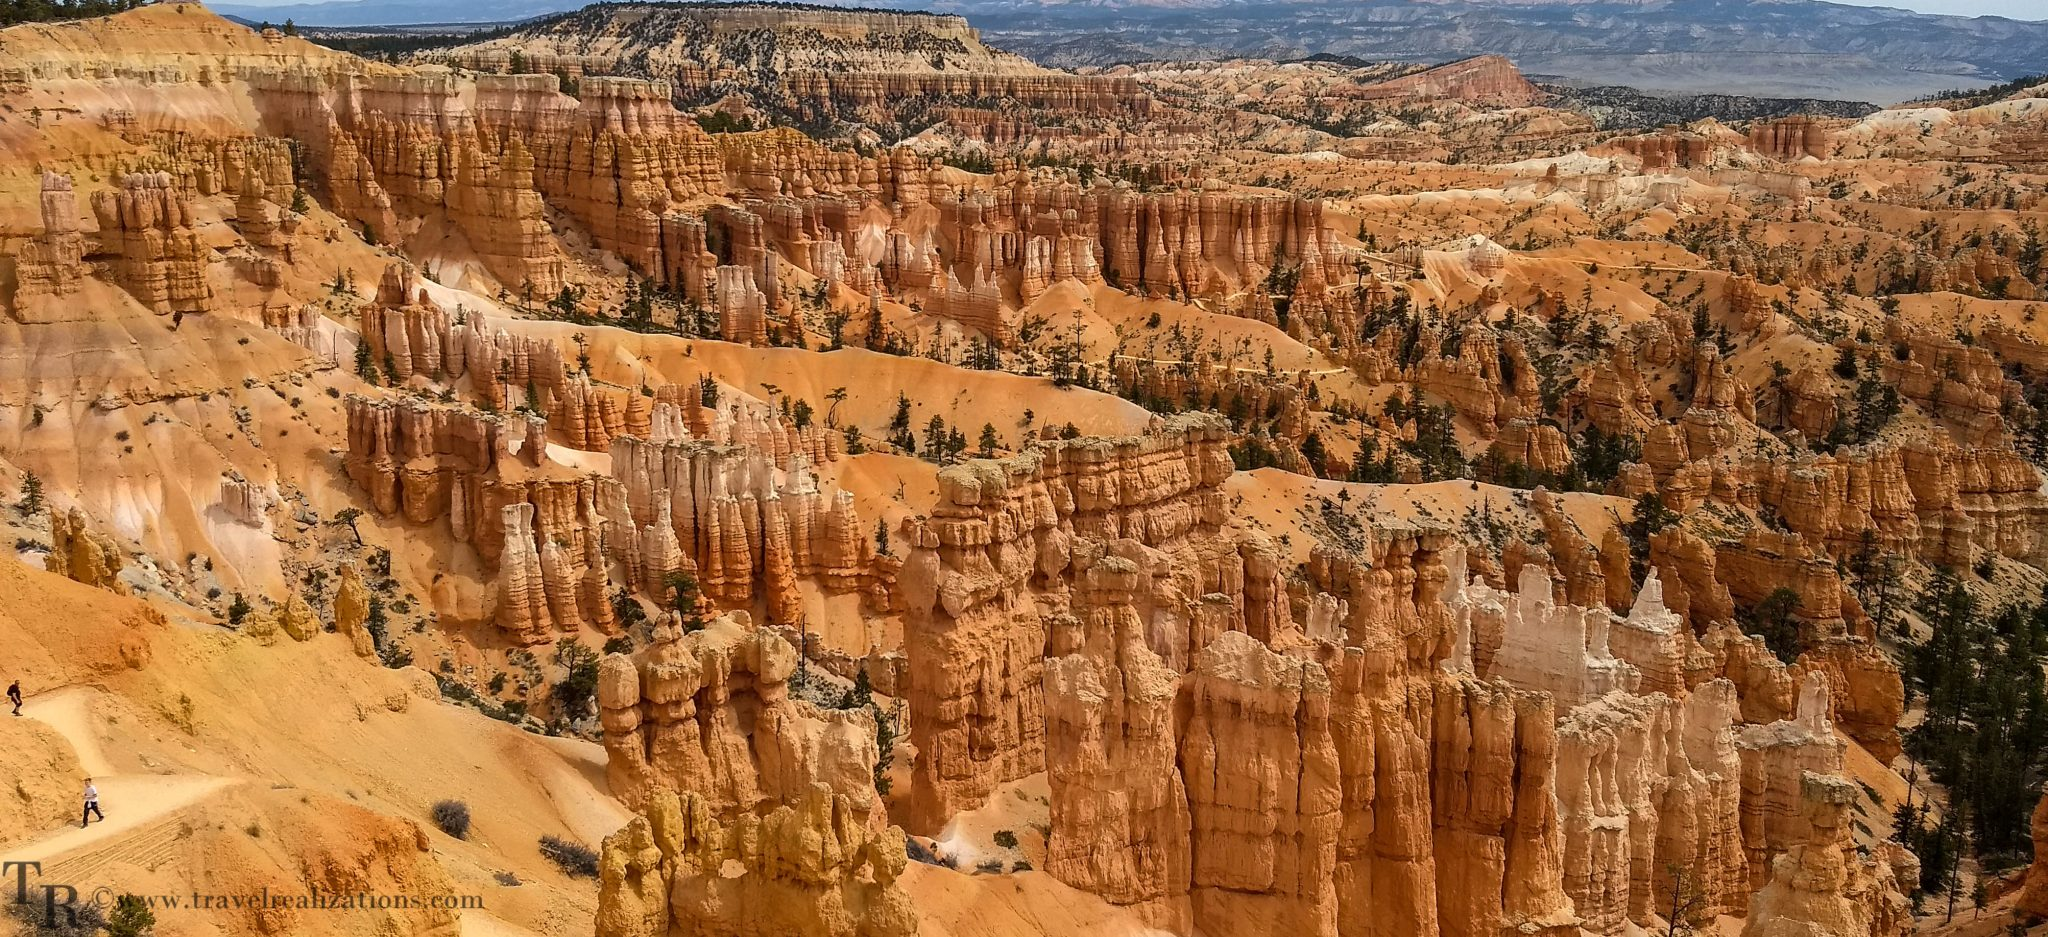 Bryce Canyon National Park - a masterpiece of nature!